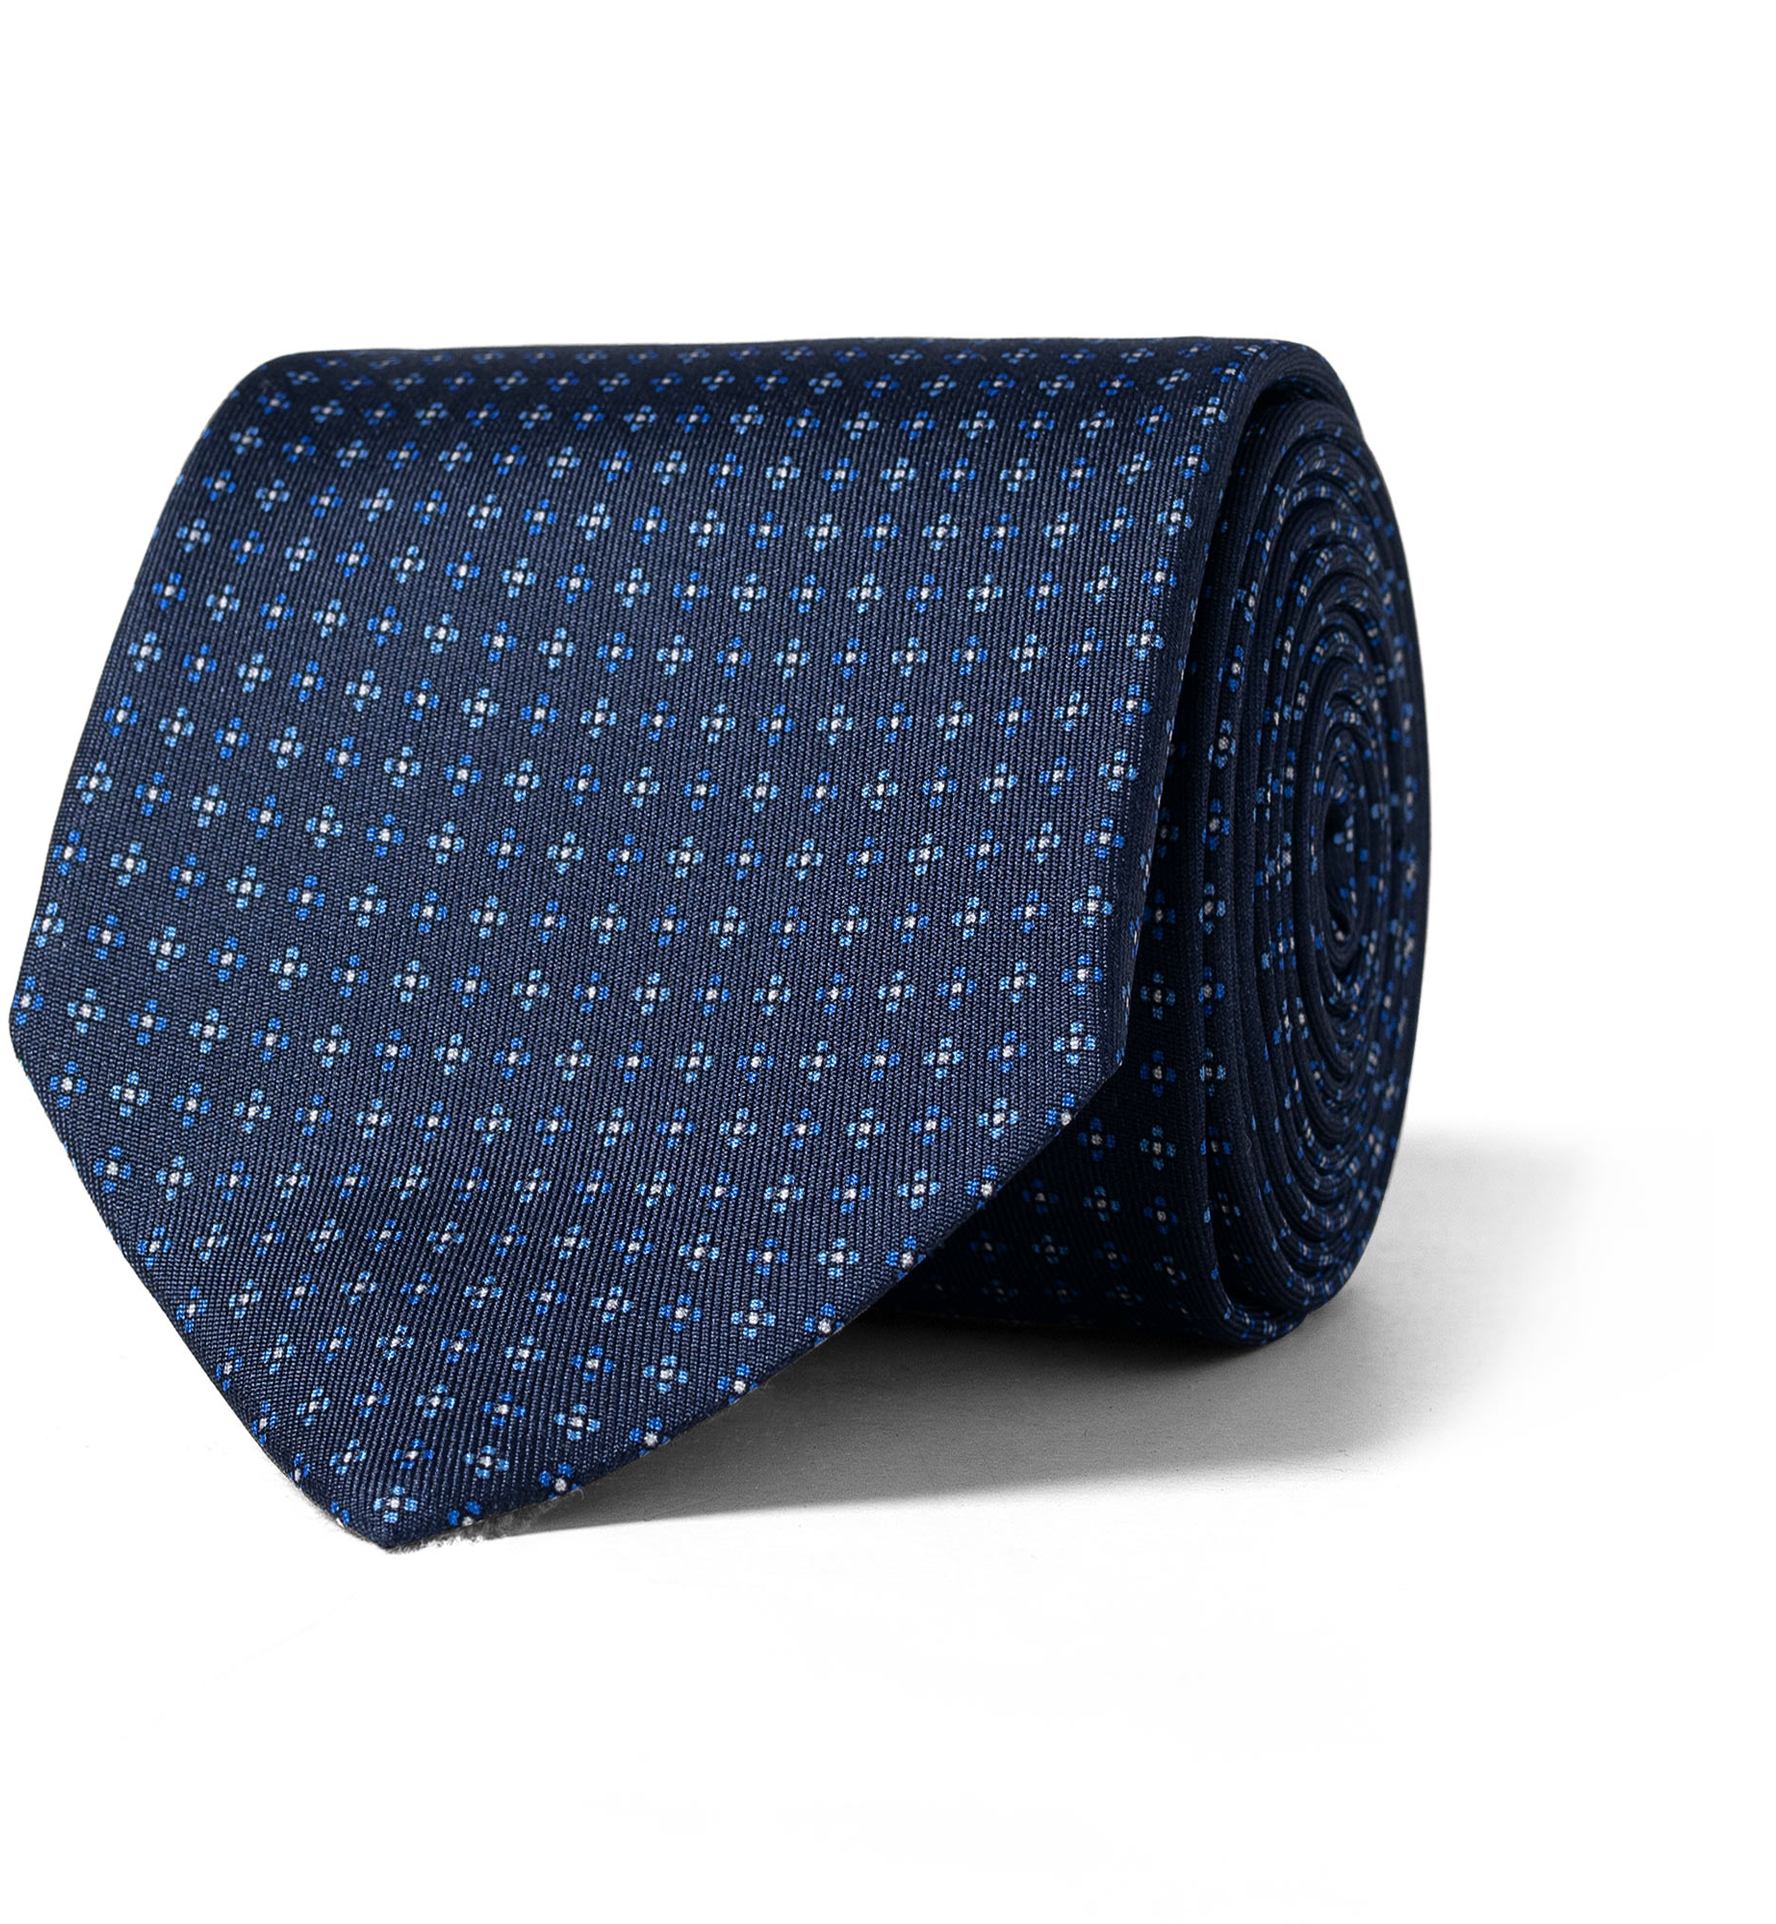 Zoom Image of Navy and Light Blue Small Foulard Silk Tie